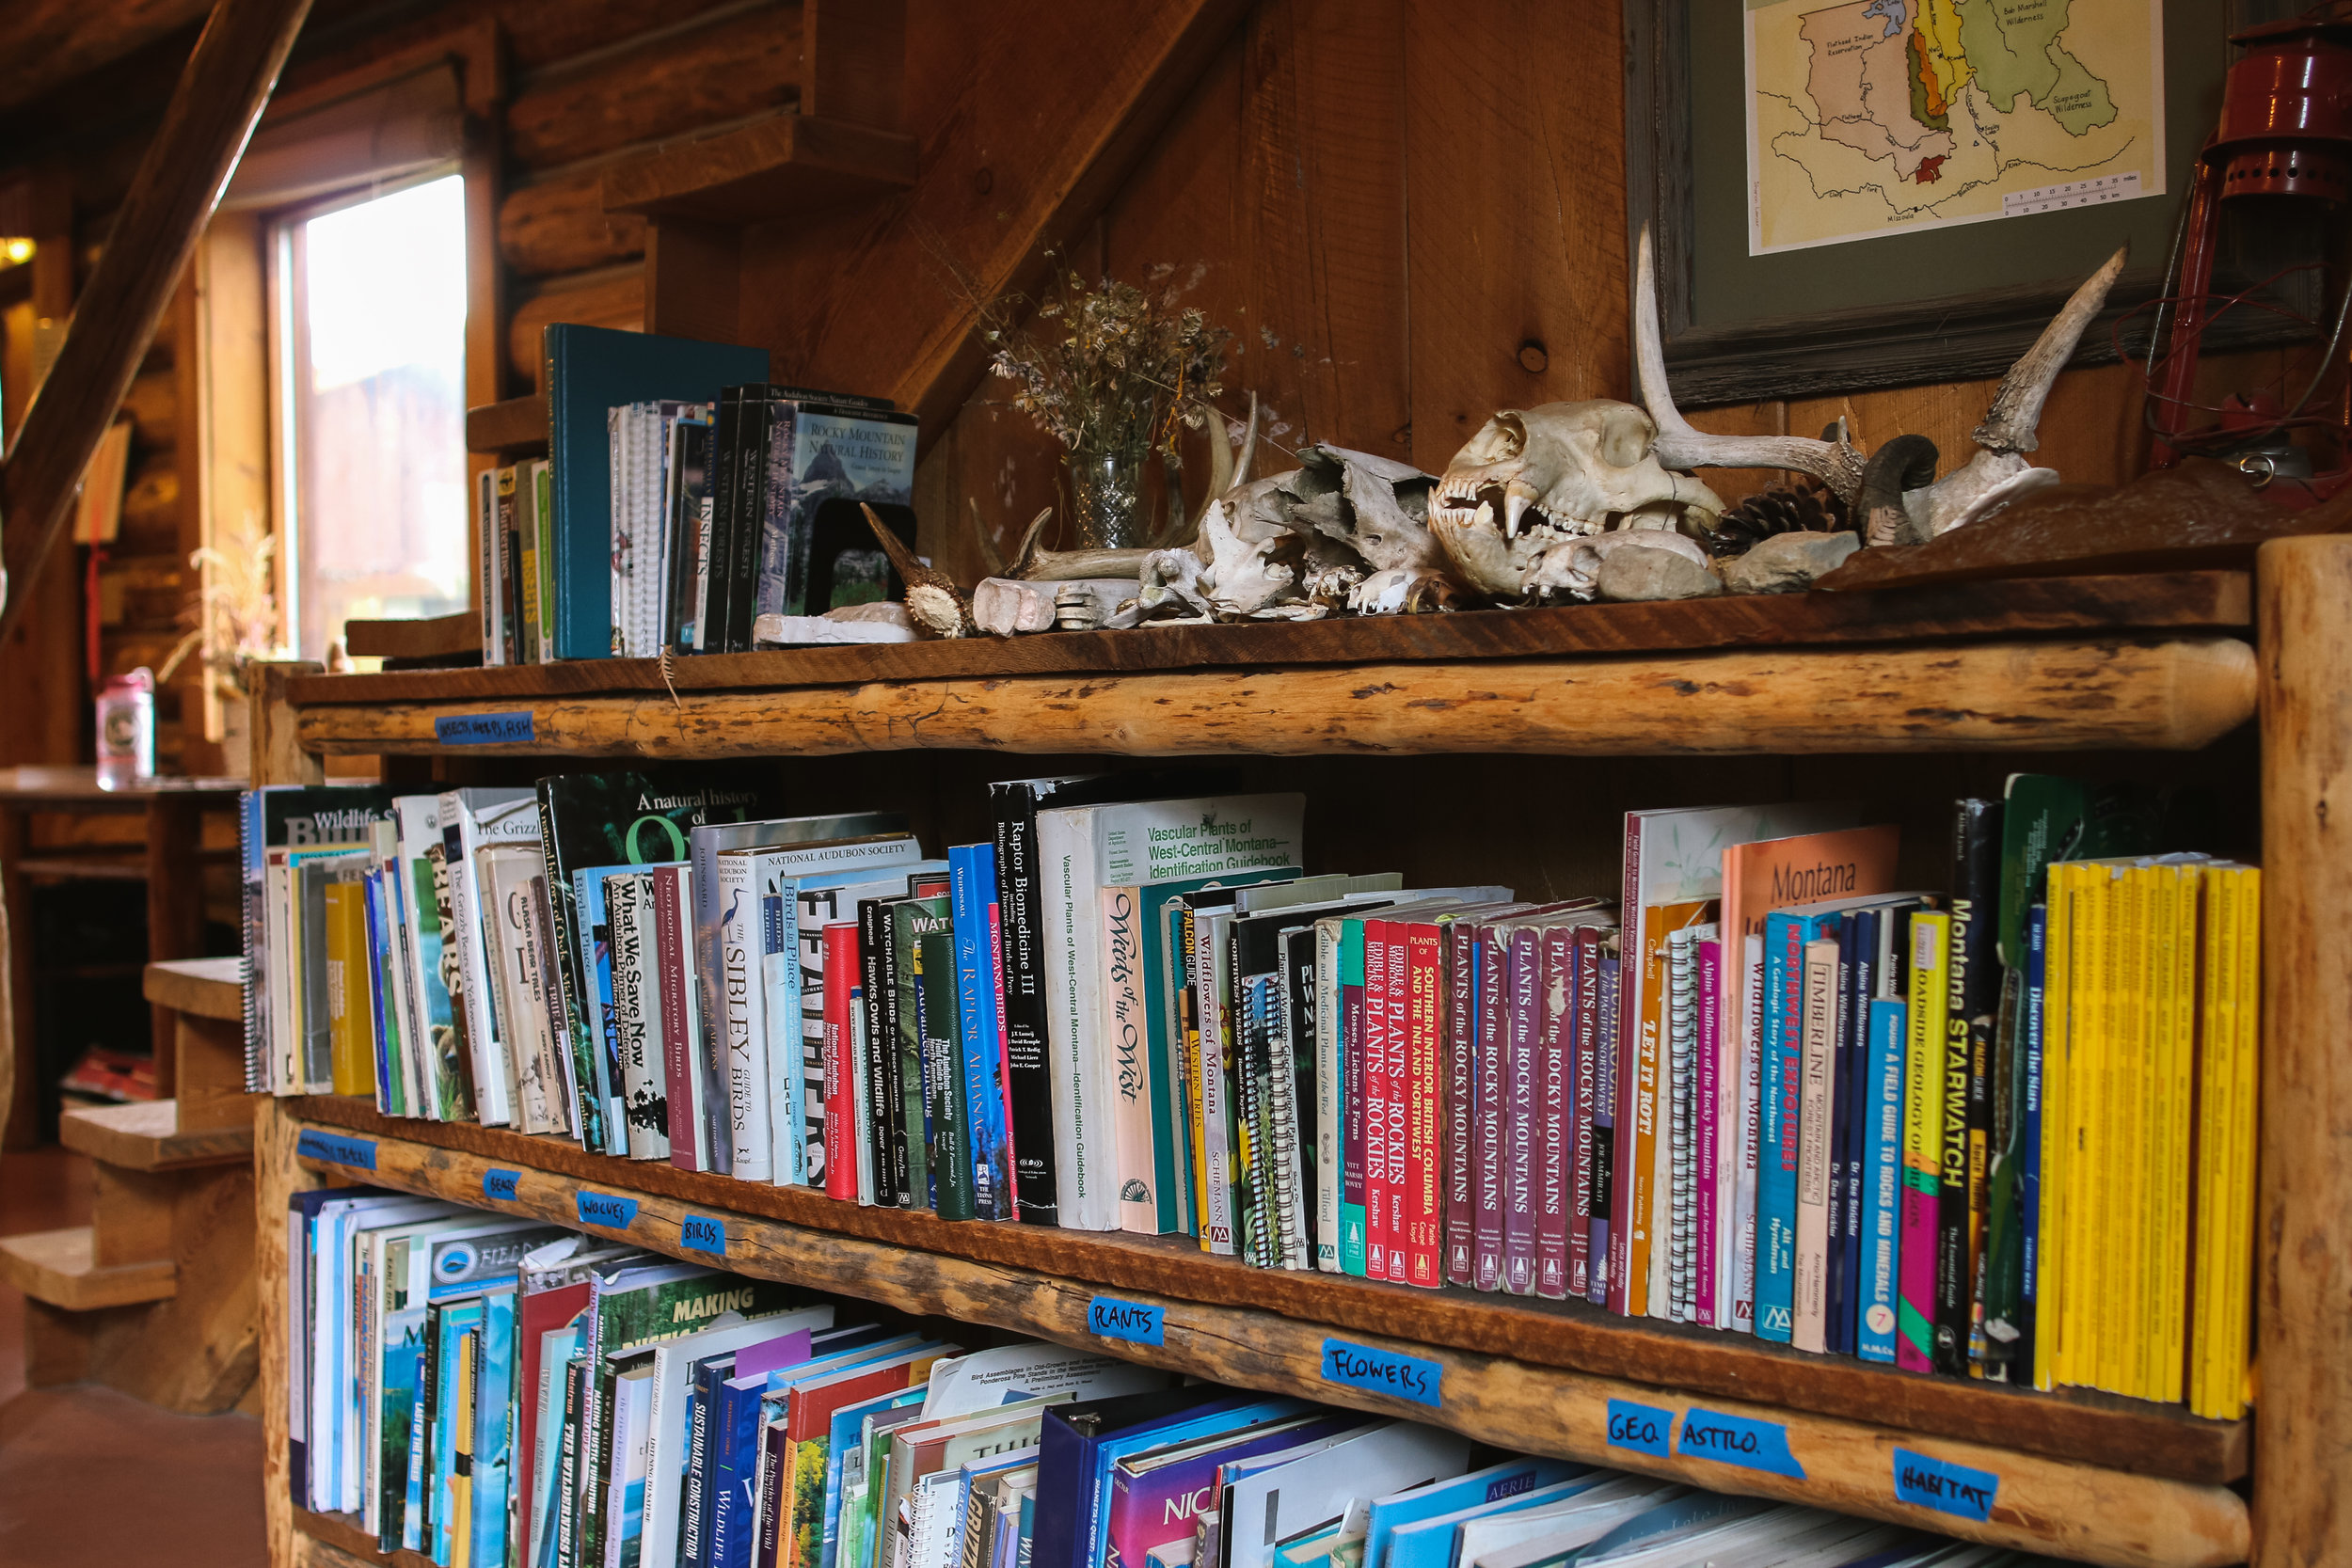 The library of relevant field guides, textbooks, and skulls.